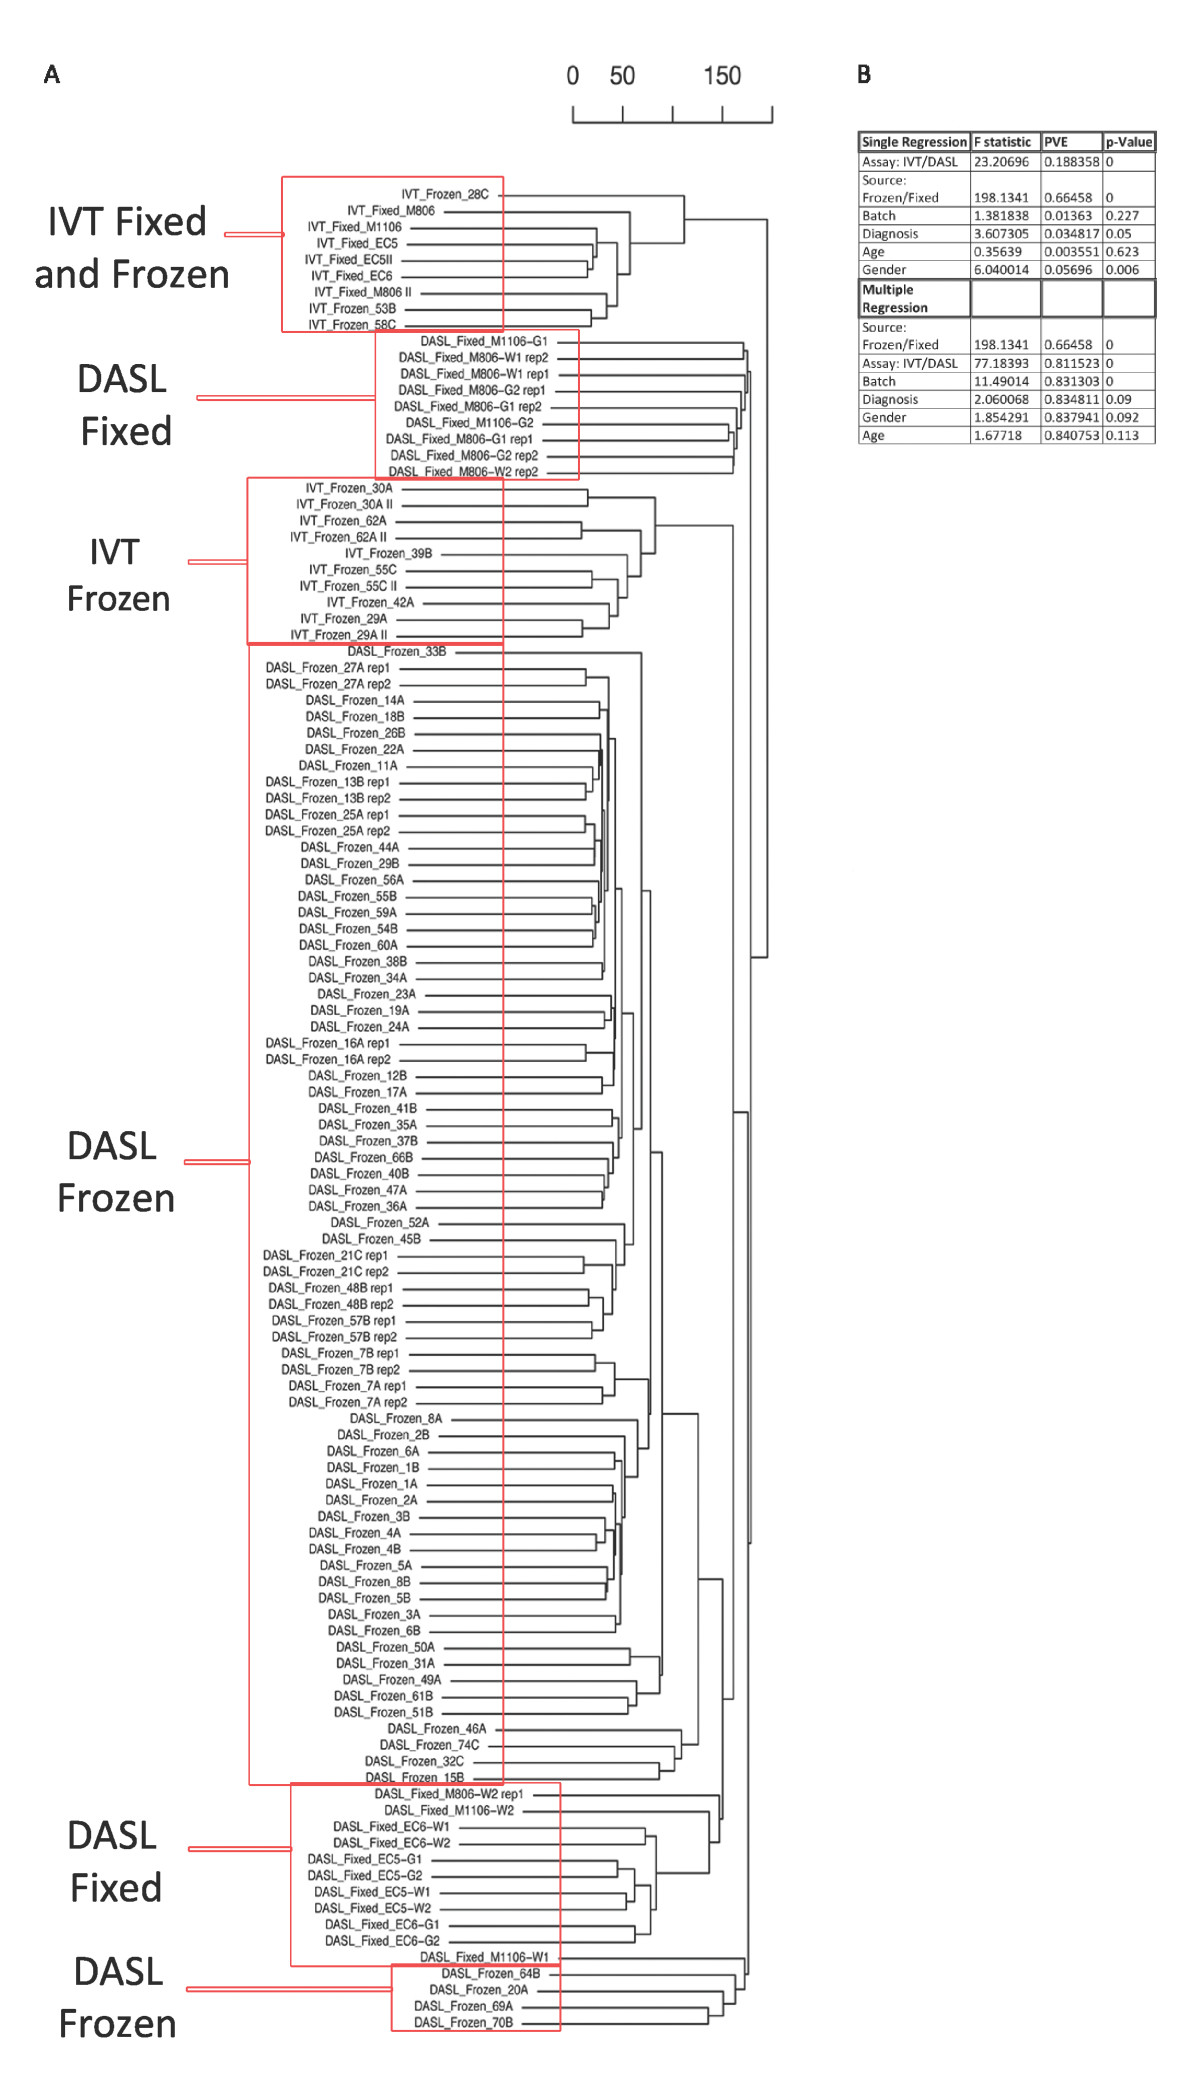 http://static-content.springer.com/image/art%3A10.1186%2F1471-2164-12-449/MediaObjects/12864_2011_3593_Fig4_HTML.jpg